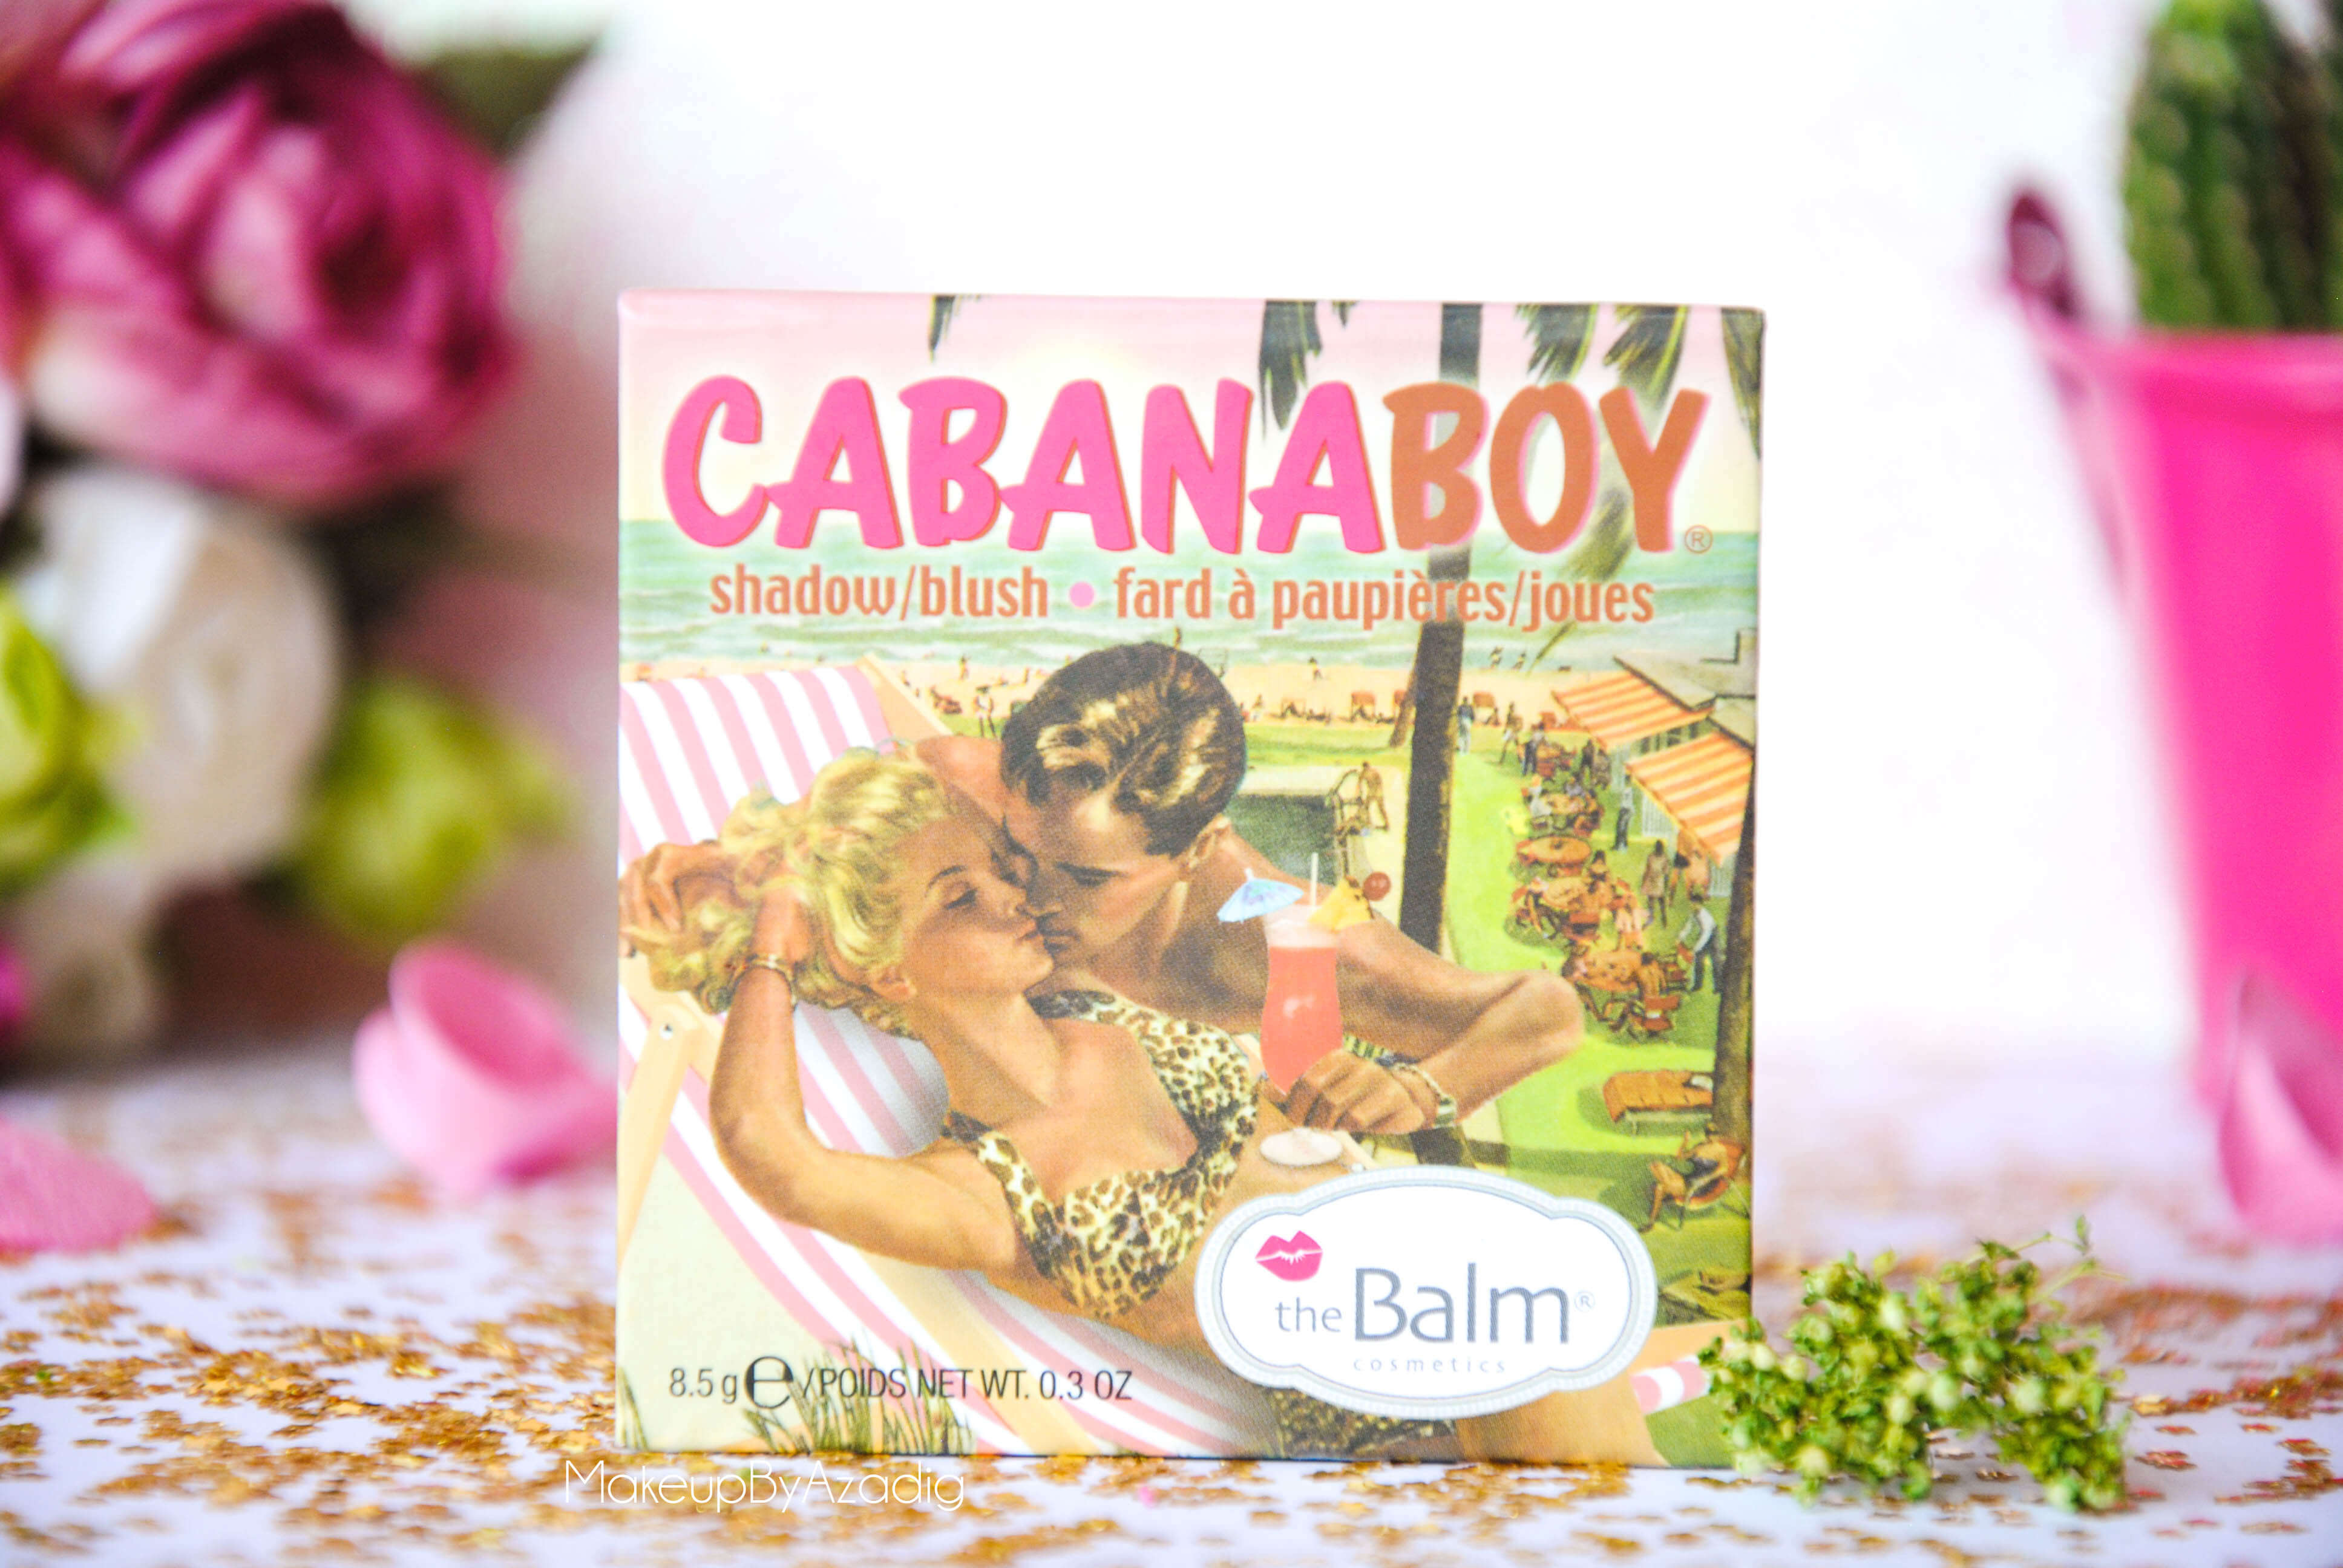 cabanaboy-the balm-blush rose fonce-monoprix-beaute privee-the beautyst-makeupbyazadig-cruelty free